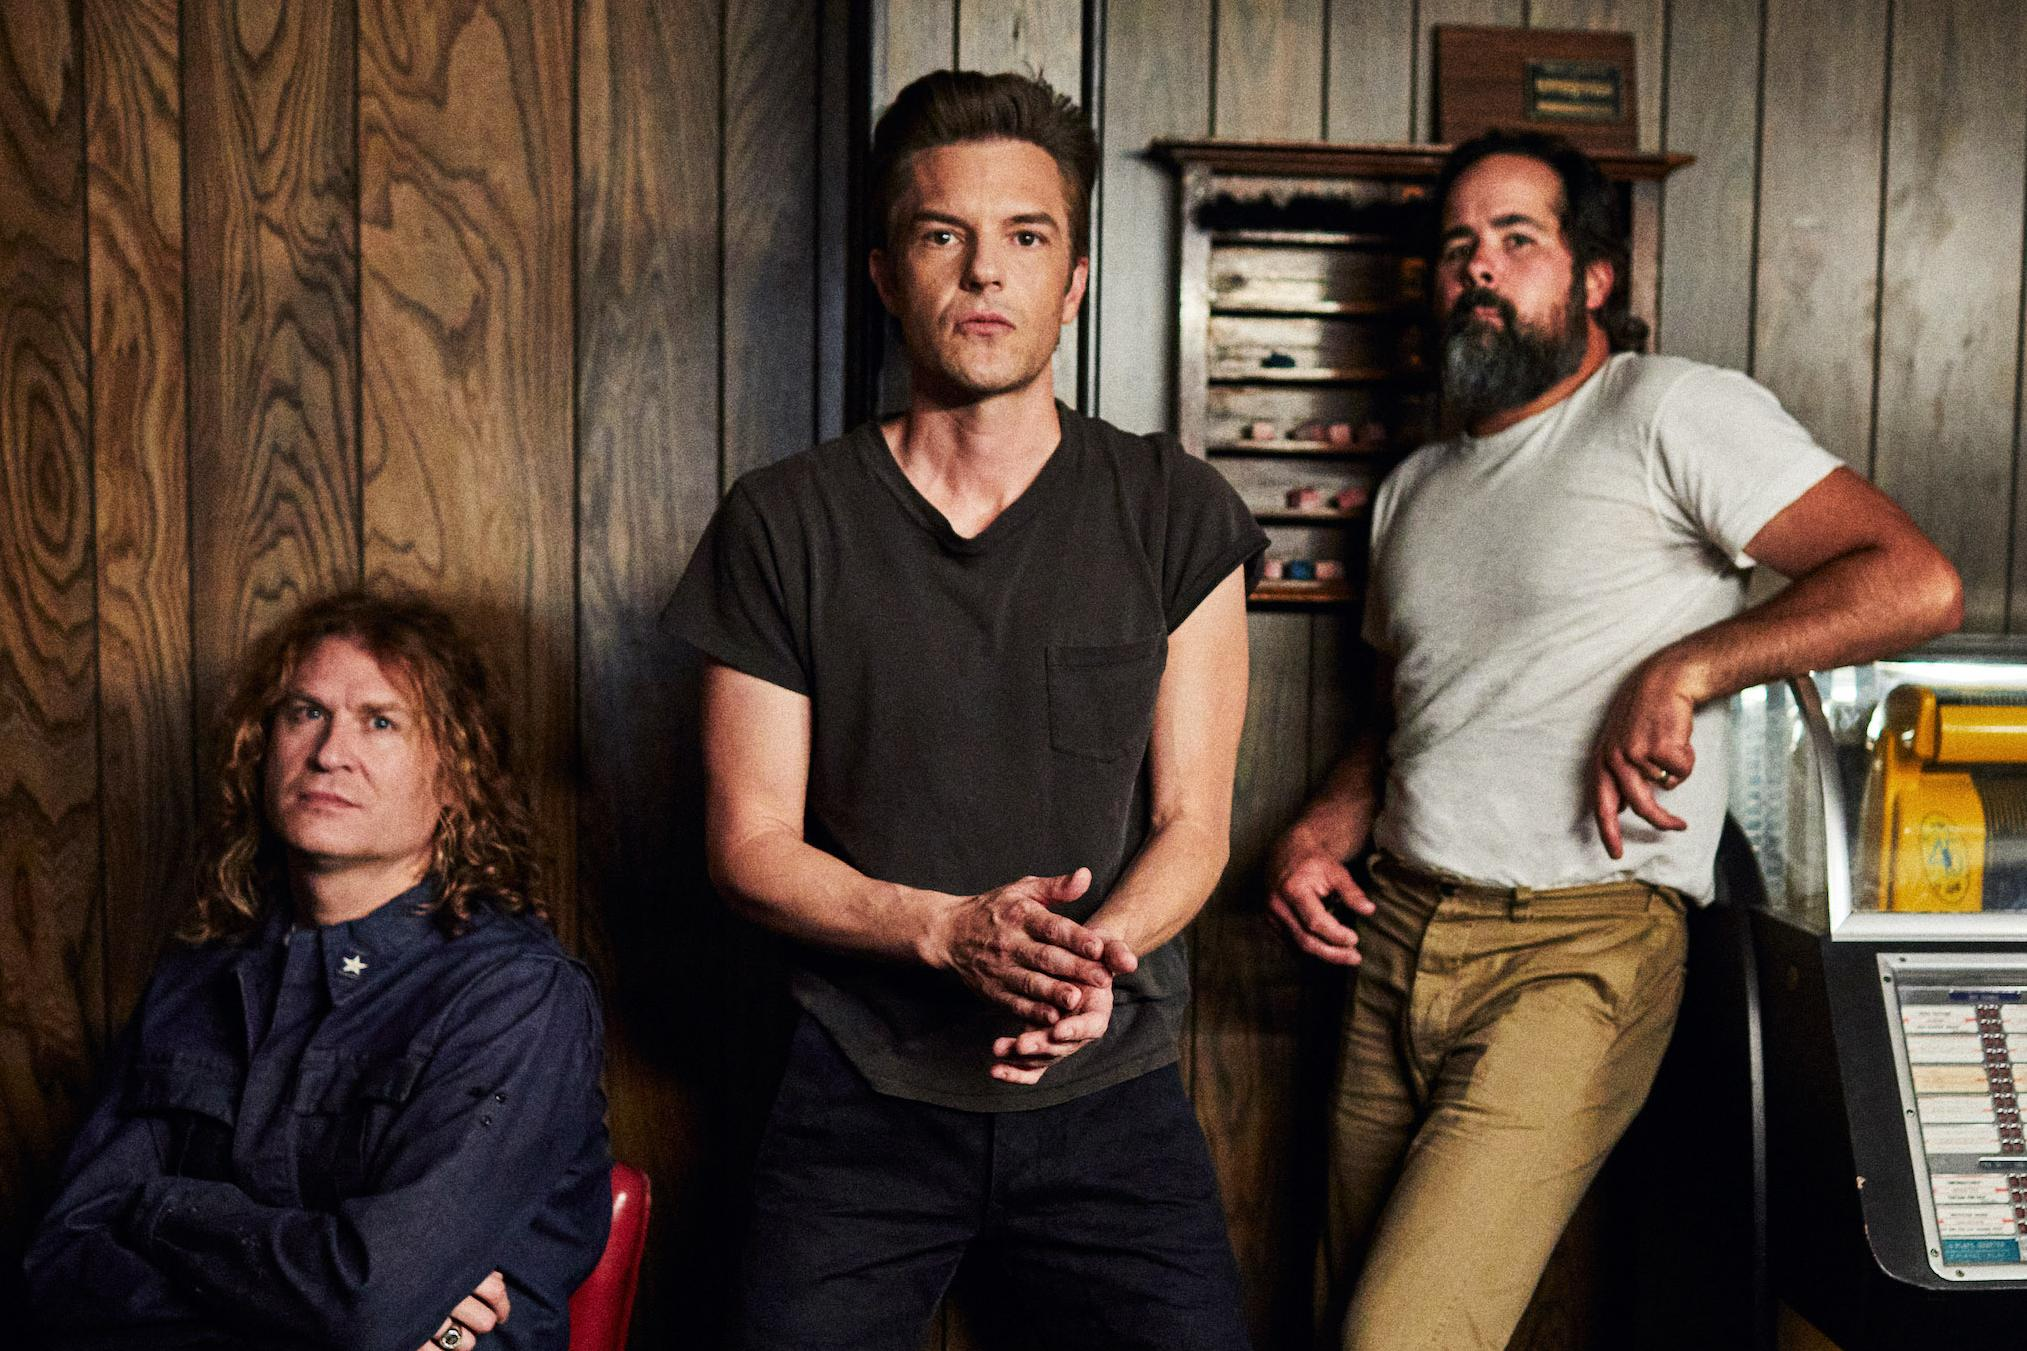 The Killers 2021 Music Trajectory